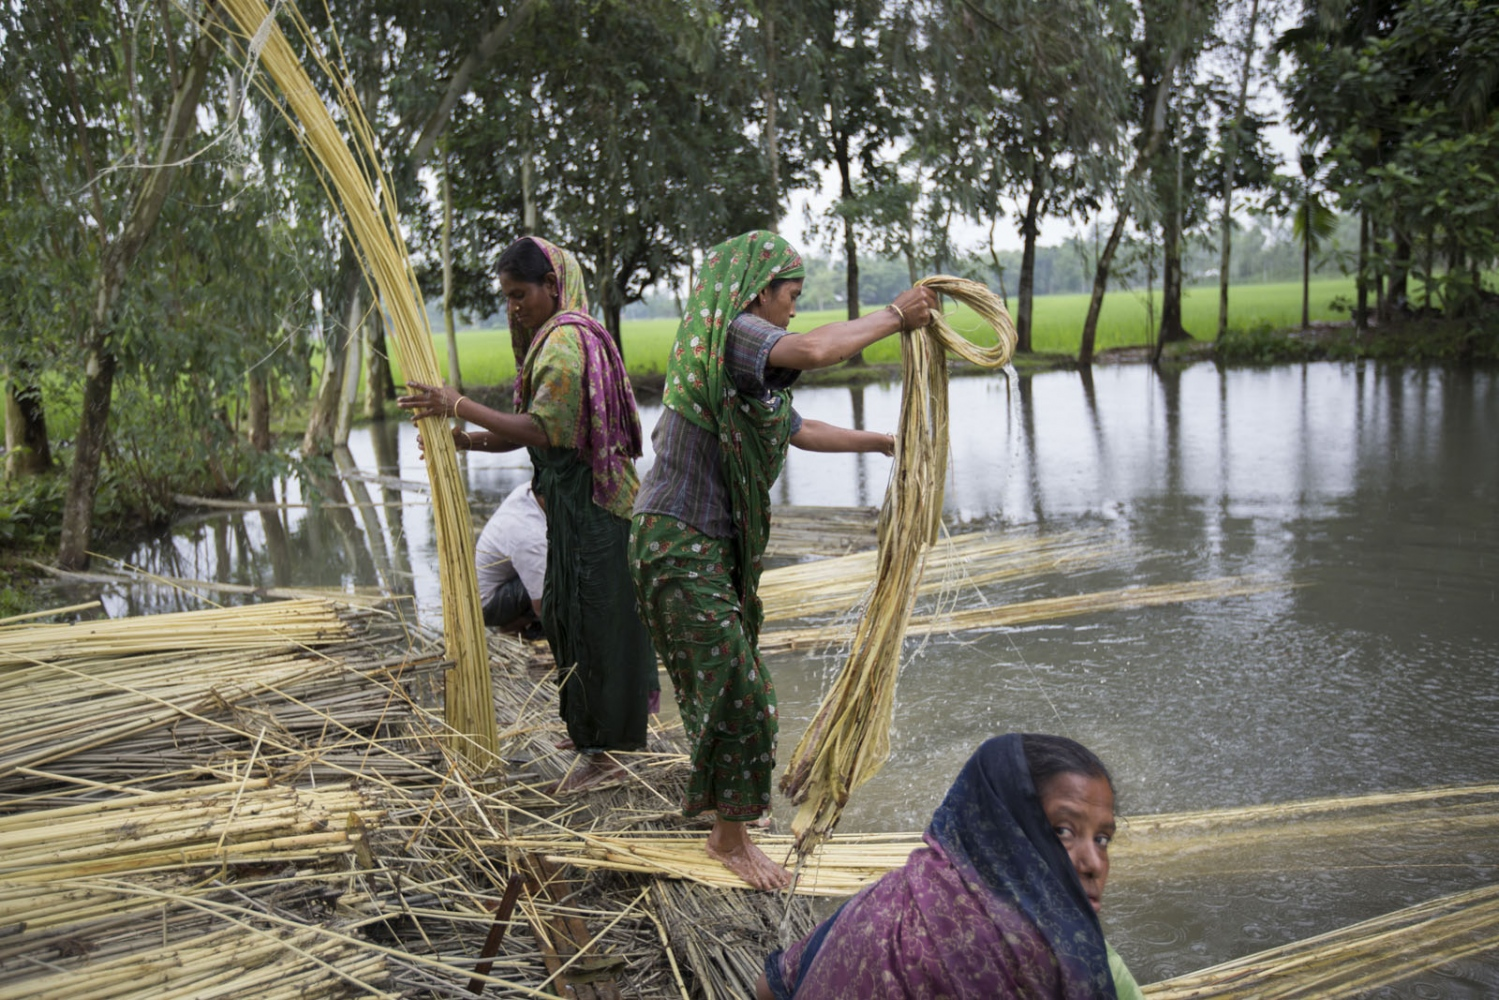 Inside an enclave, or chitmahal, villagers prepare jute that has been submerged in this pond for weeks. For the many inhabitants of the enclaves, jute is where most of their income comes from and also what they use to build their houses. Jute is also known as the Golden Thread of Bangladesh is one of the largest industries in the country.